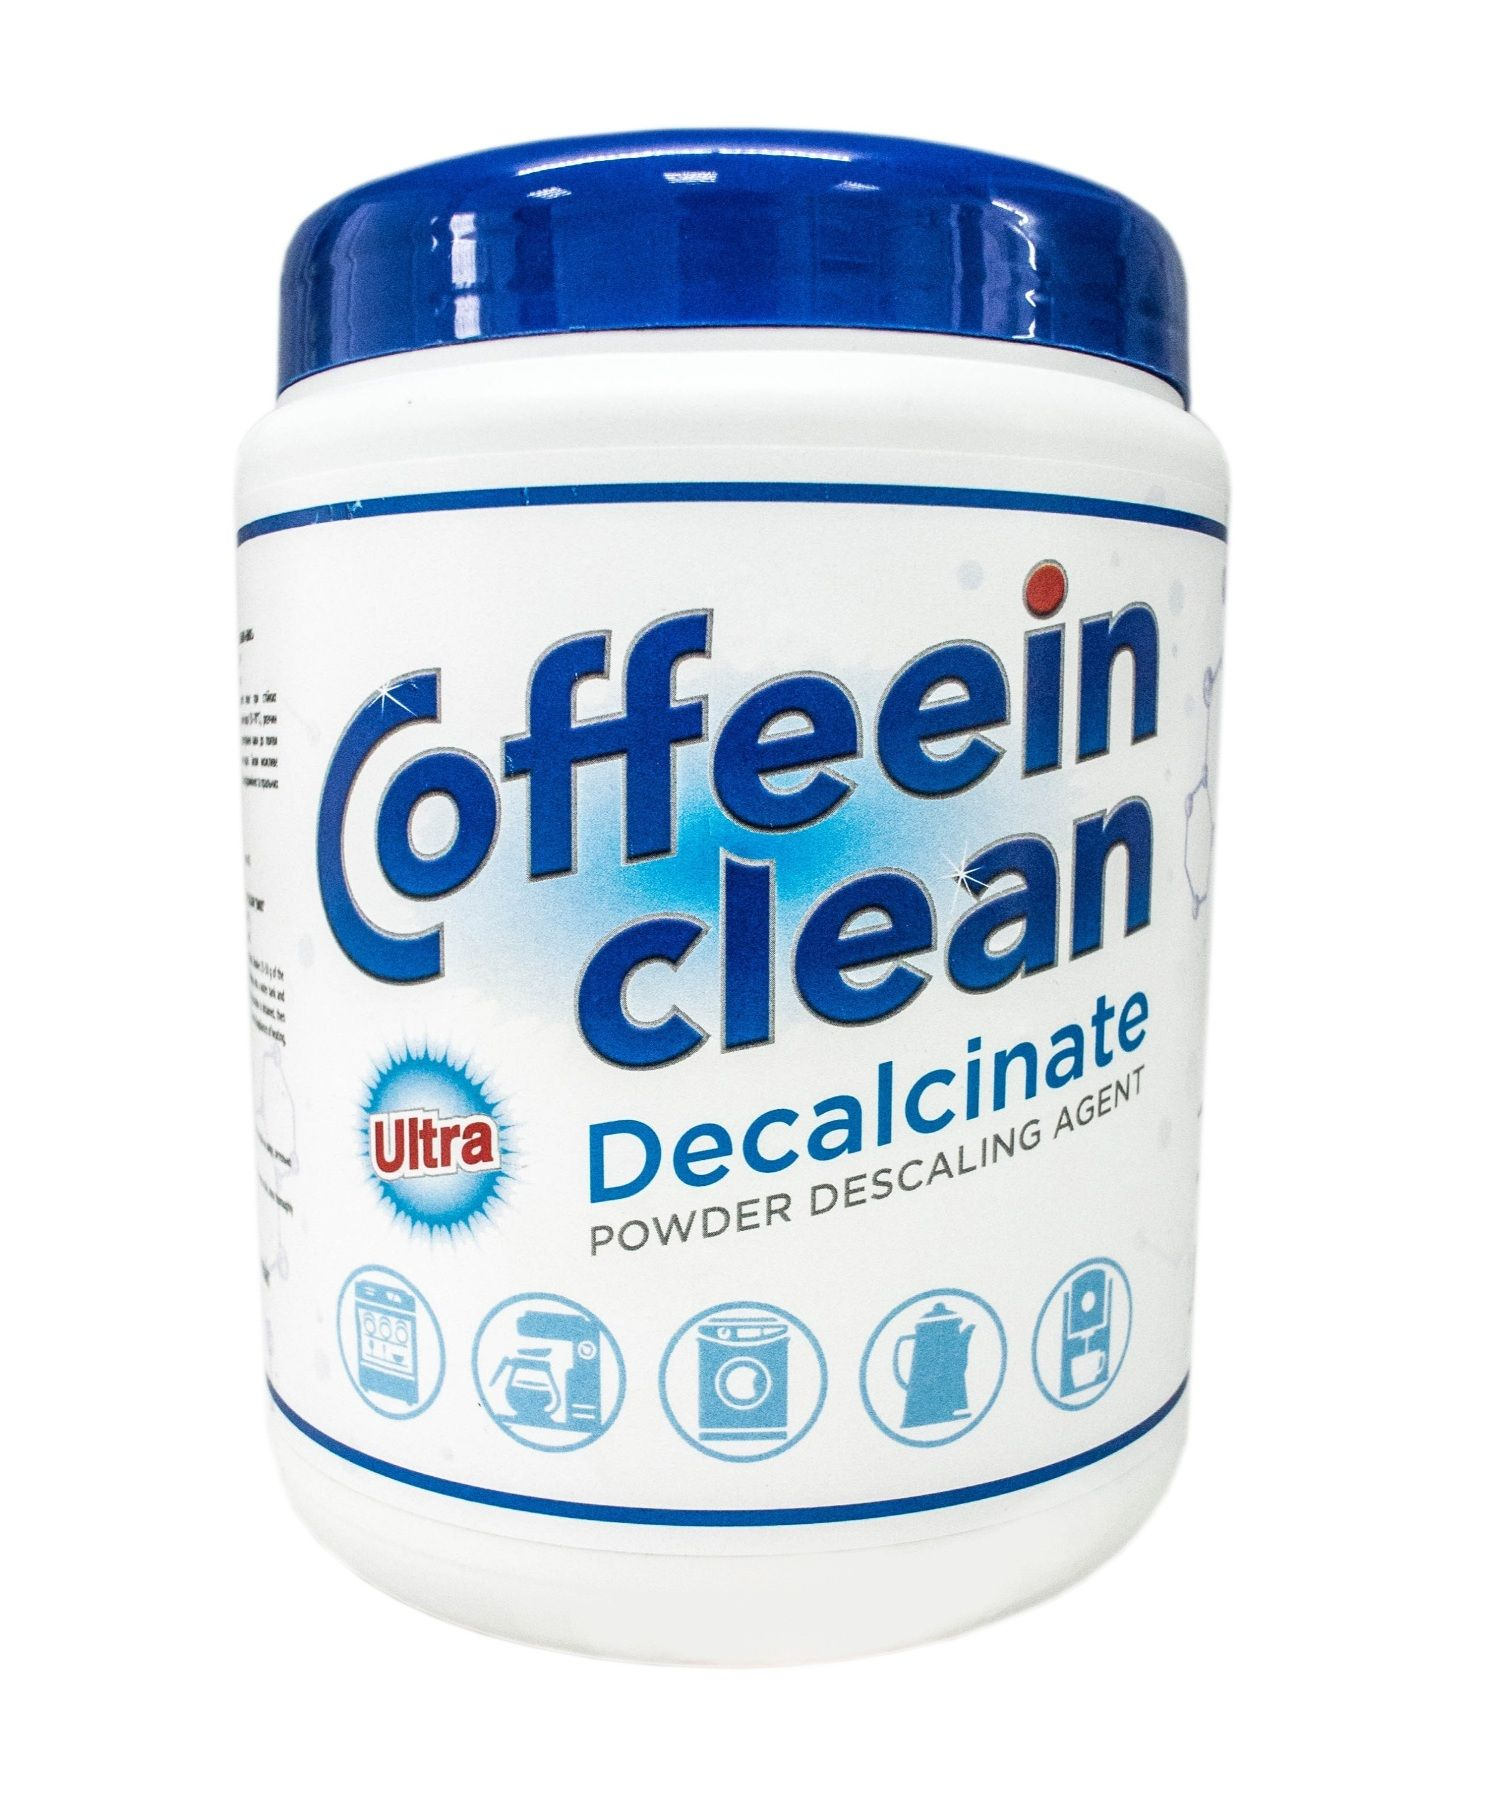 Порошок Coffeein clean DECALCINATE ULTRA для чистки кофемашин